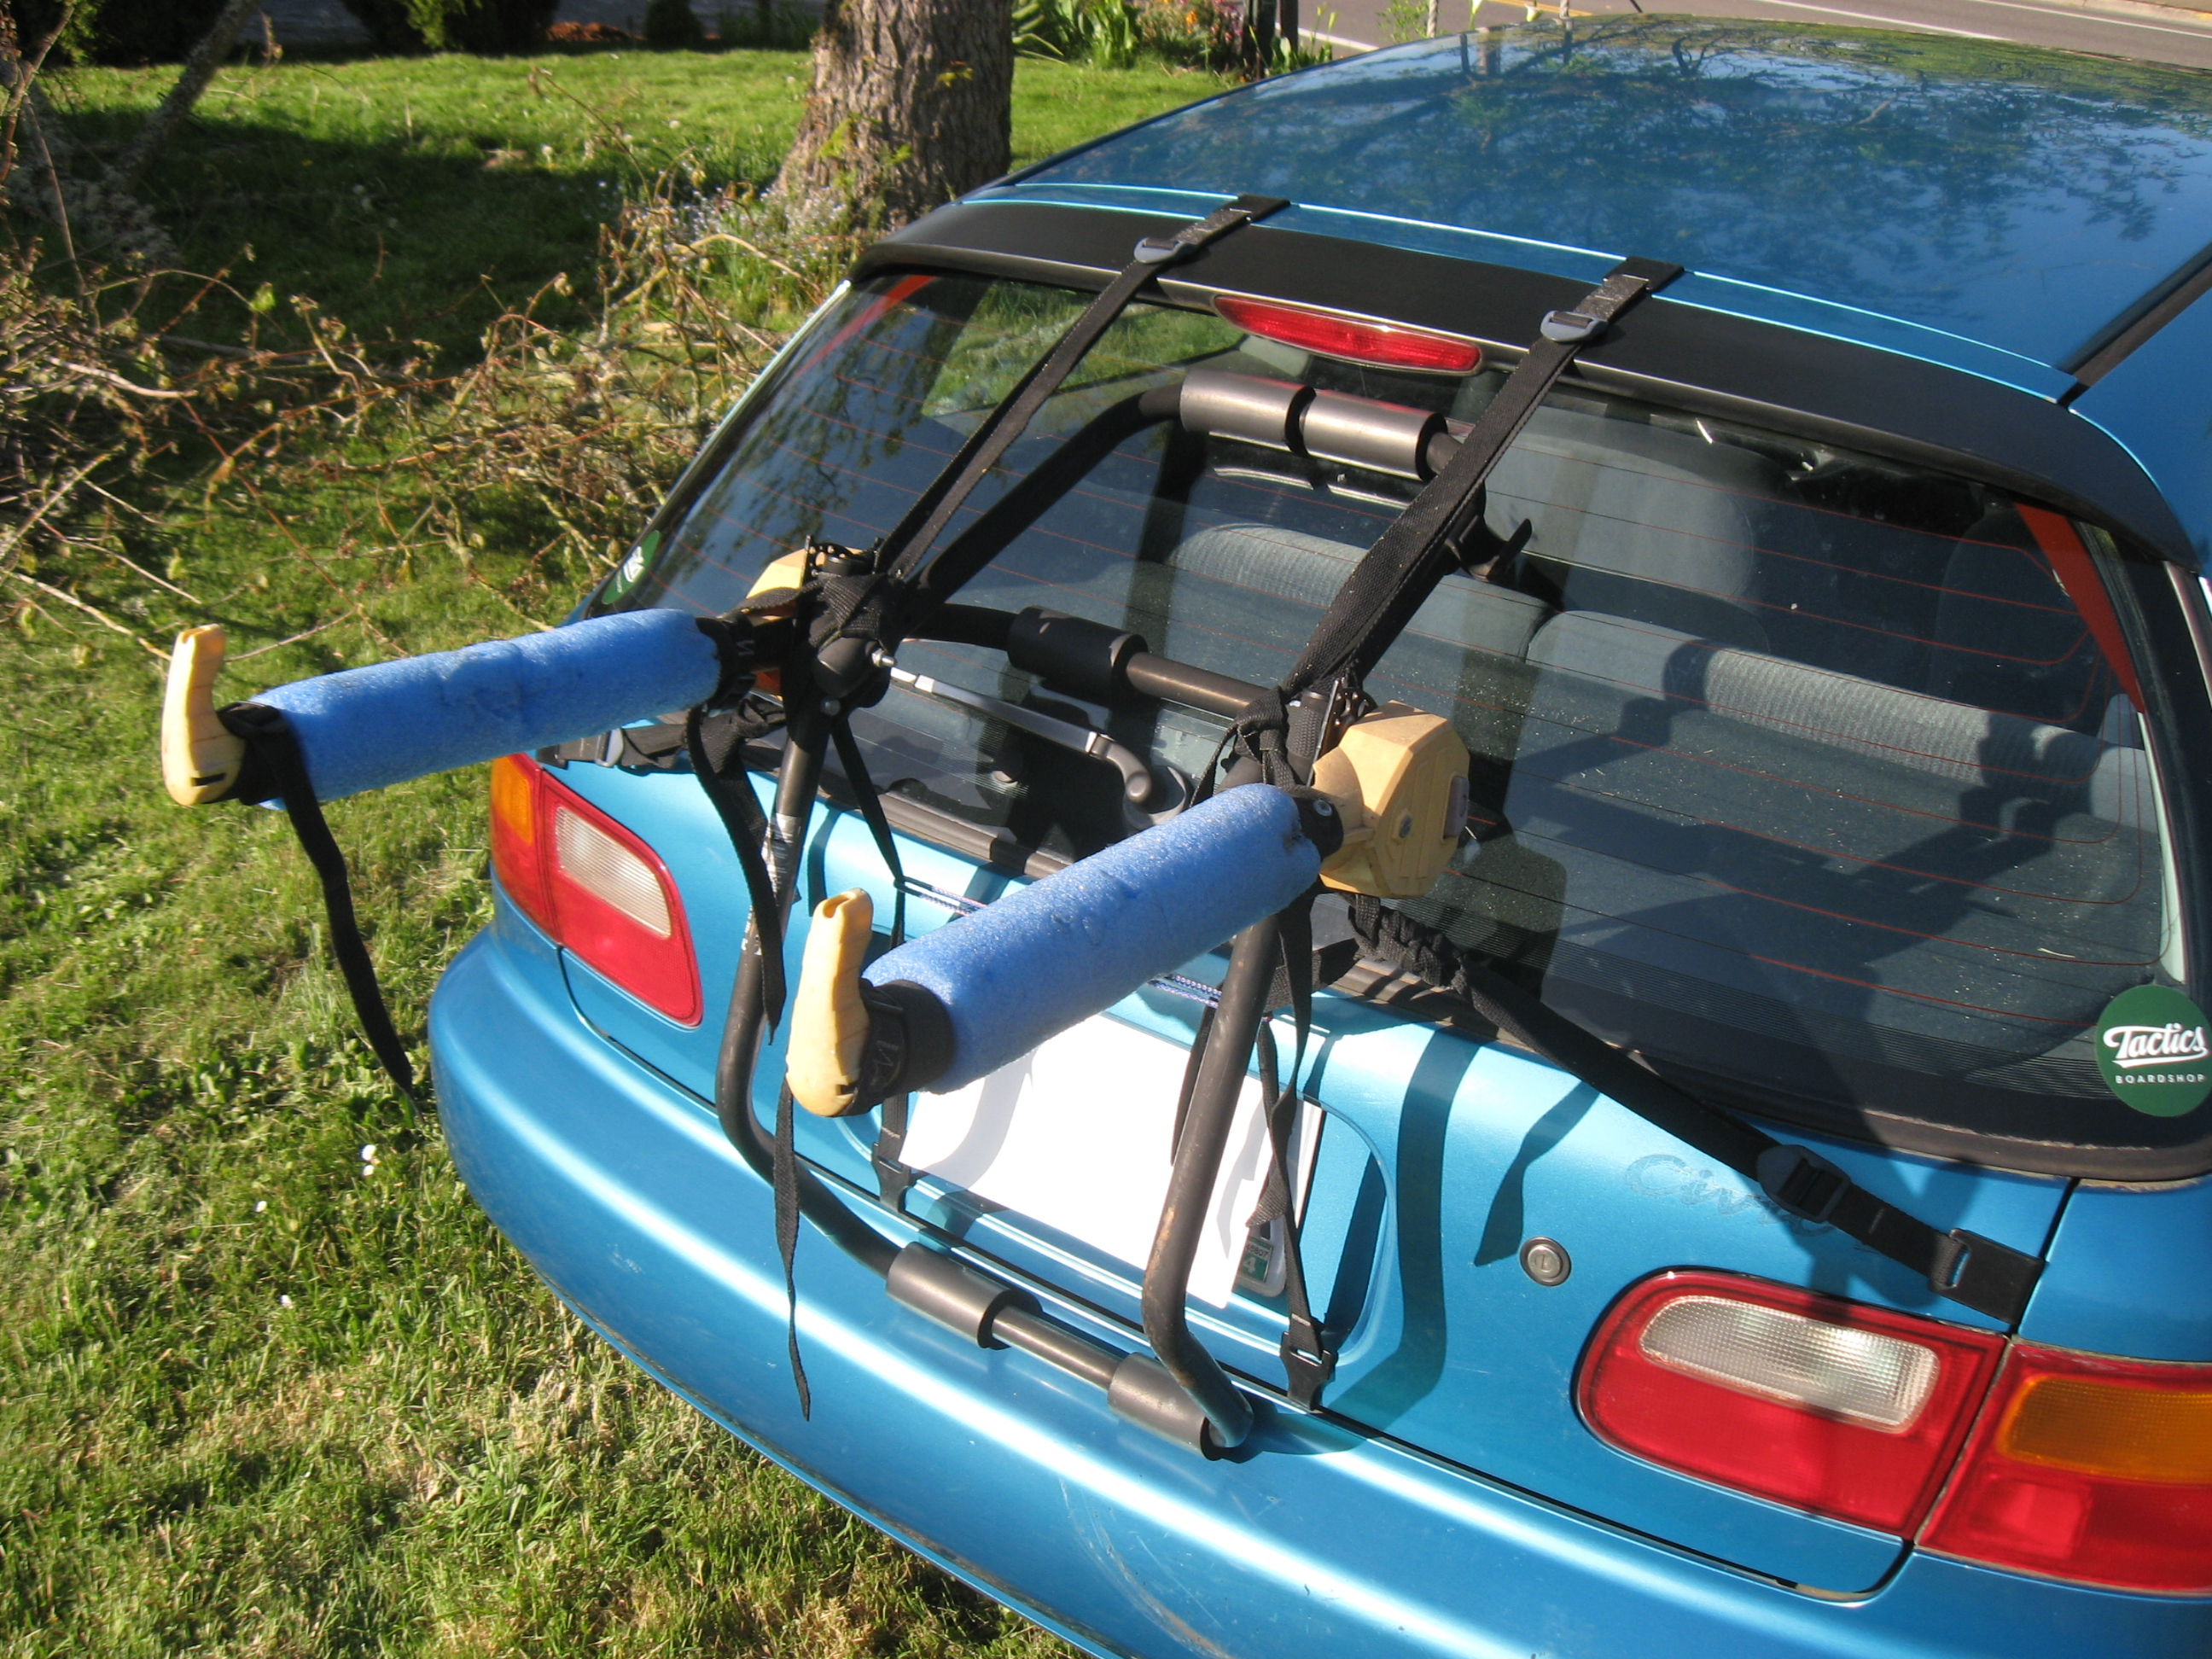 Bike Rack For Car rear mounted bike rack I